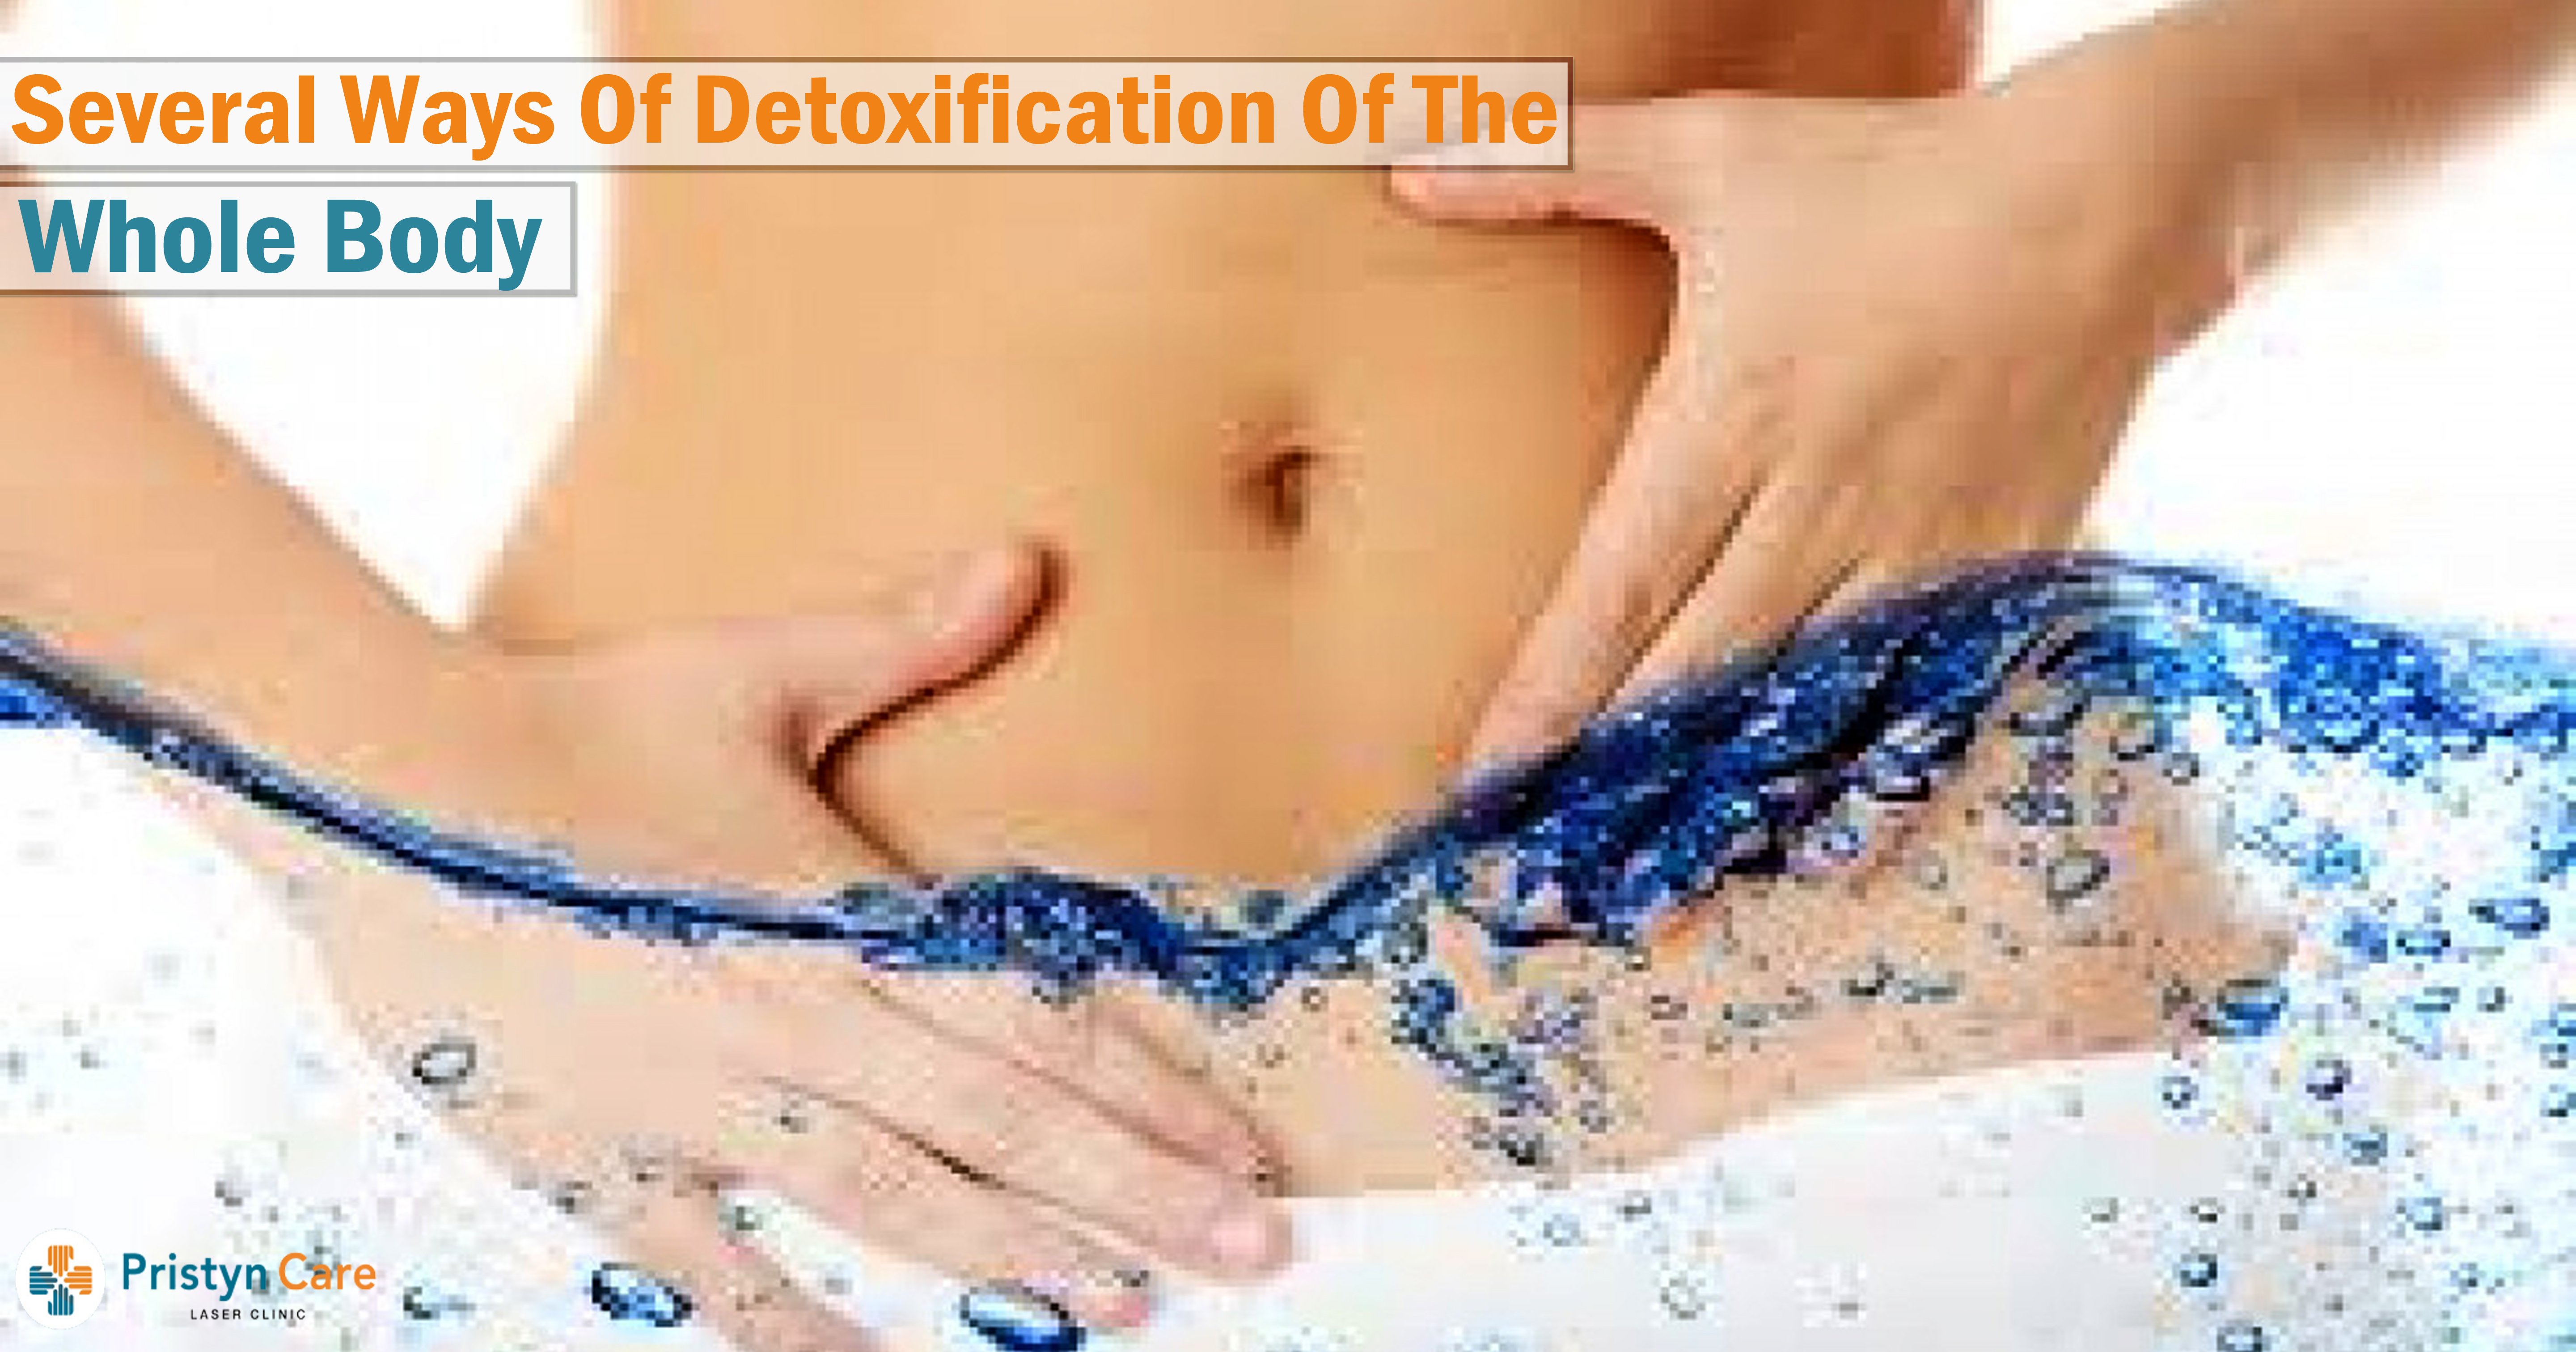 Several Ways of Detoxification of the Whole Body